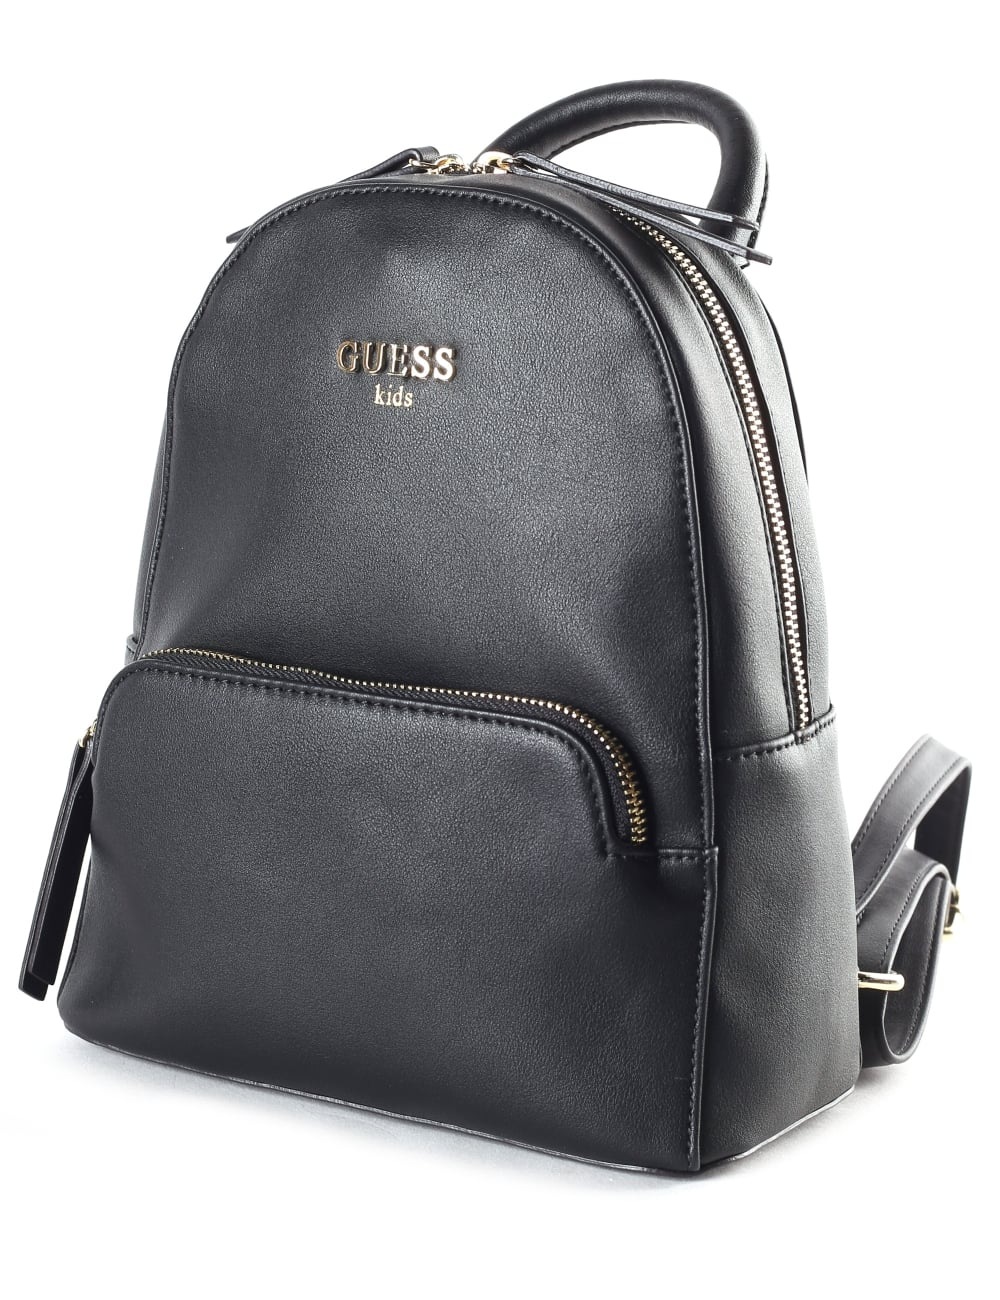 GUESS Varsity Pop Belt Bag & Reviews Handbags